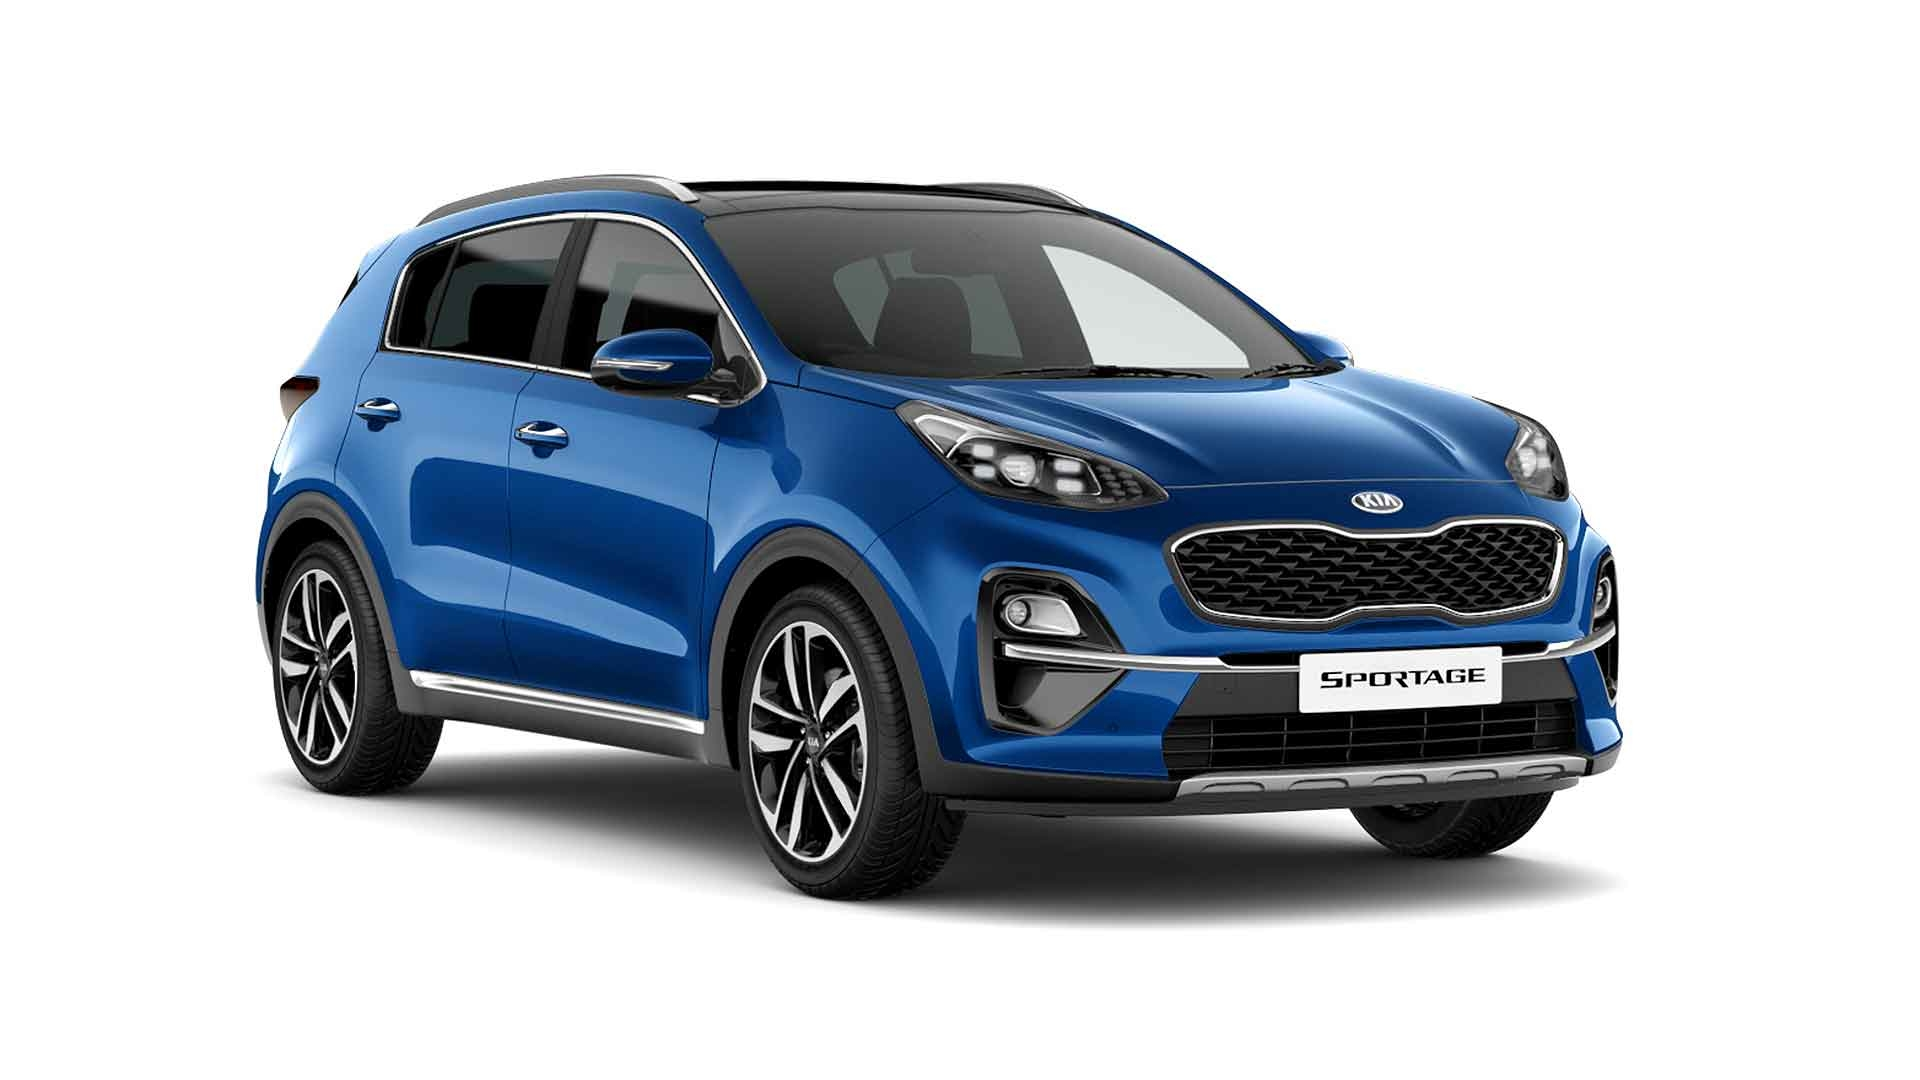 2020 Kia Sportage Update Prices Specs And Ordering Dates Motoring Research